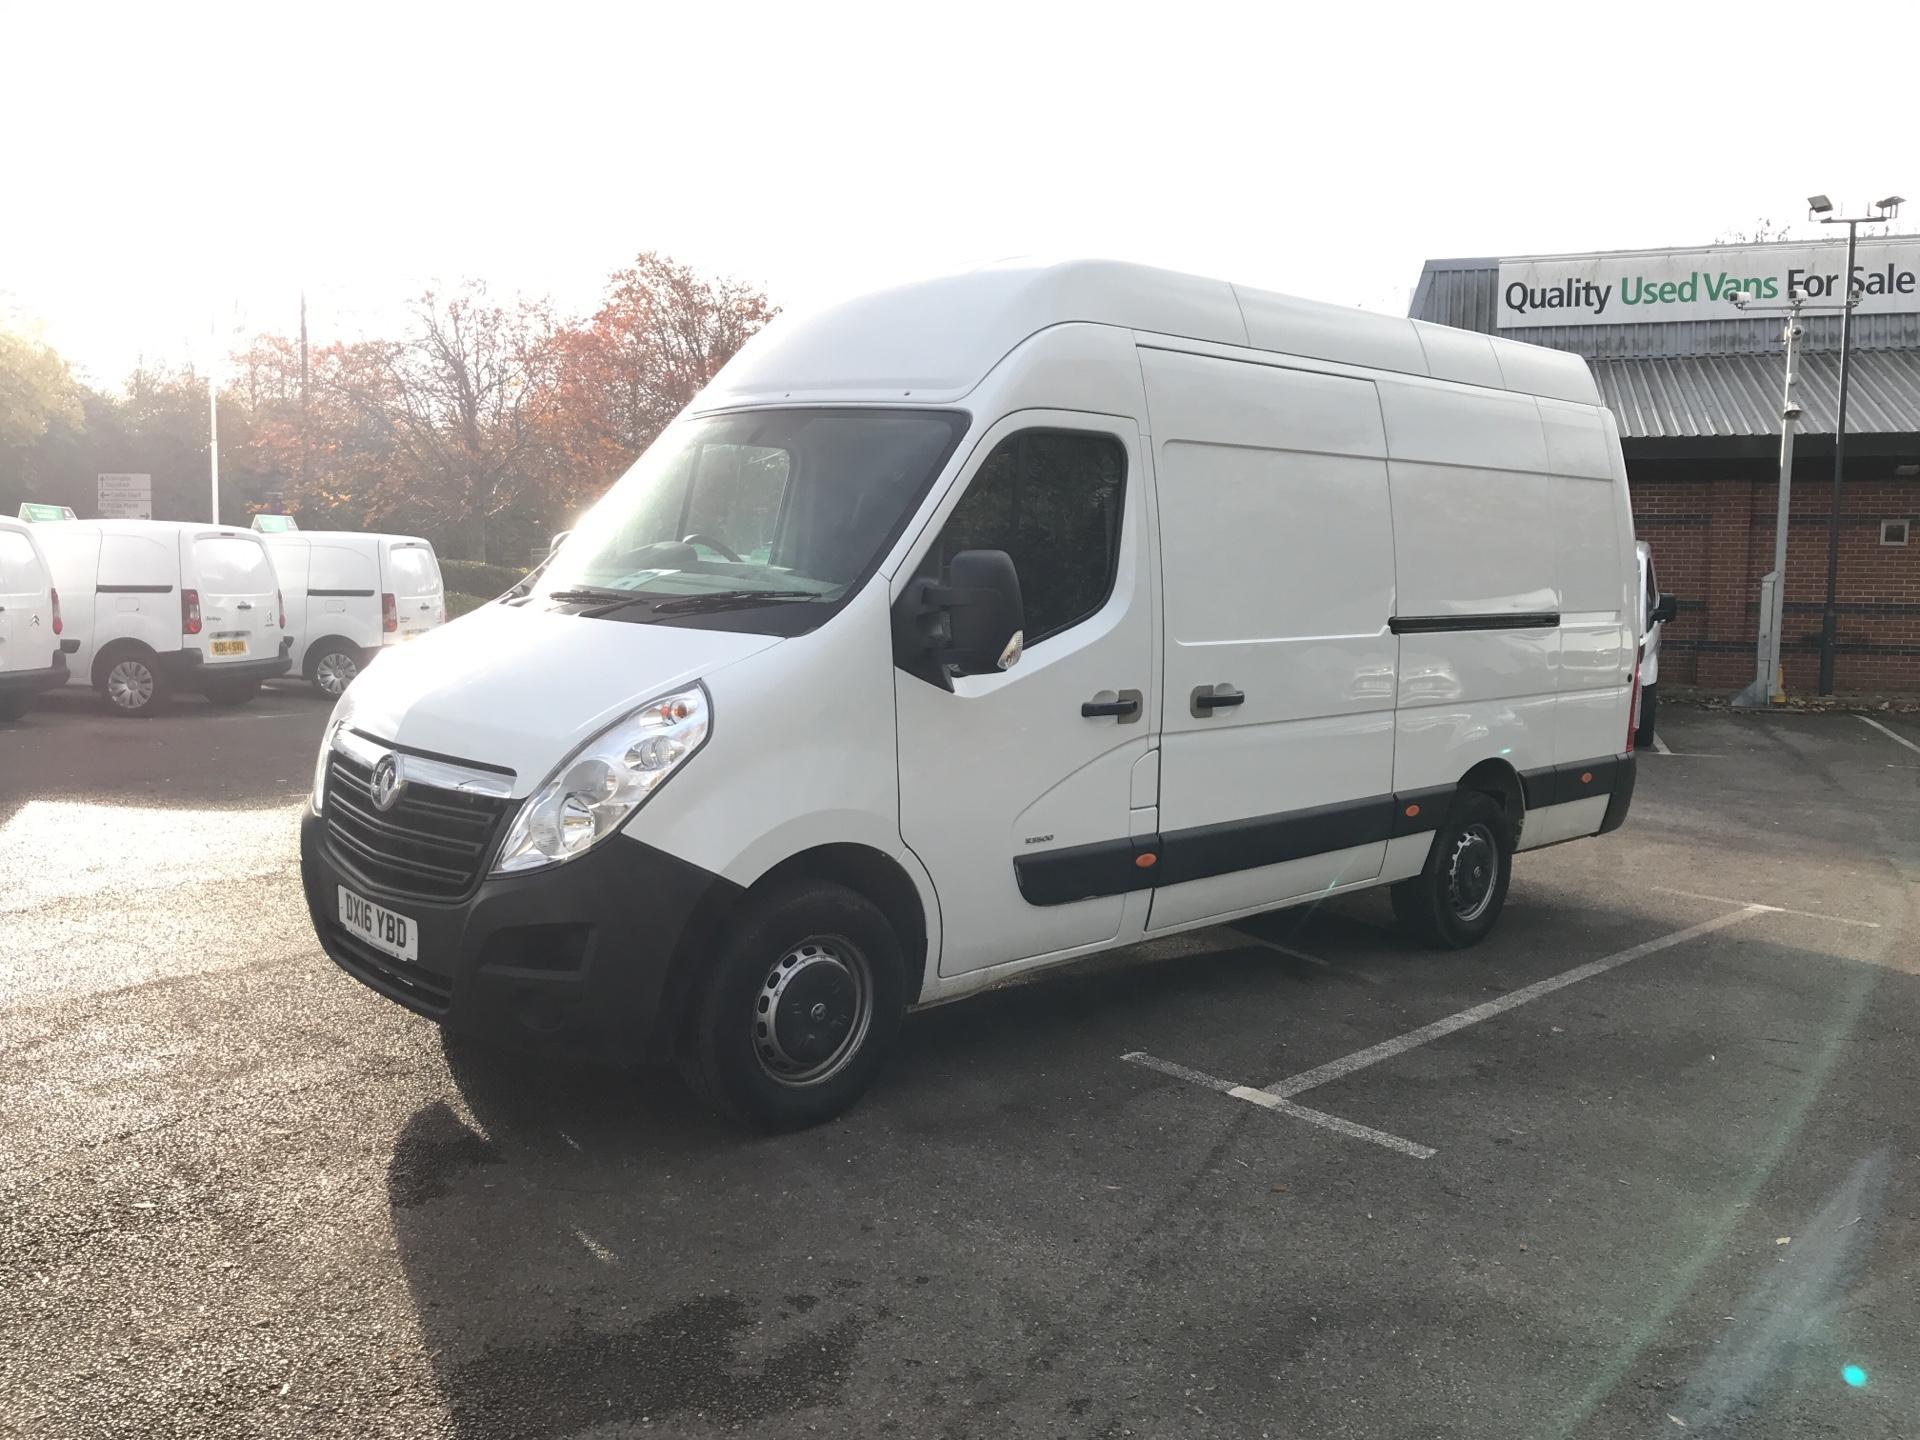 2016 Vauxhall Movano 35 L3 H3 125PS EURO 5 *Value Range Van Condition Reflected in Price* (DX16YBD) Image 7